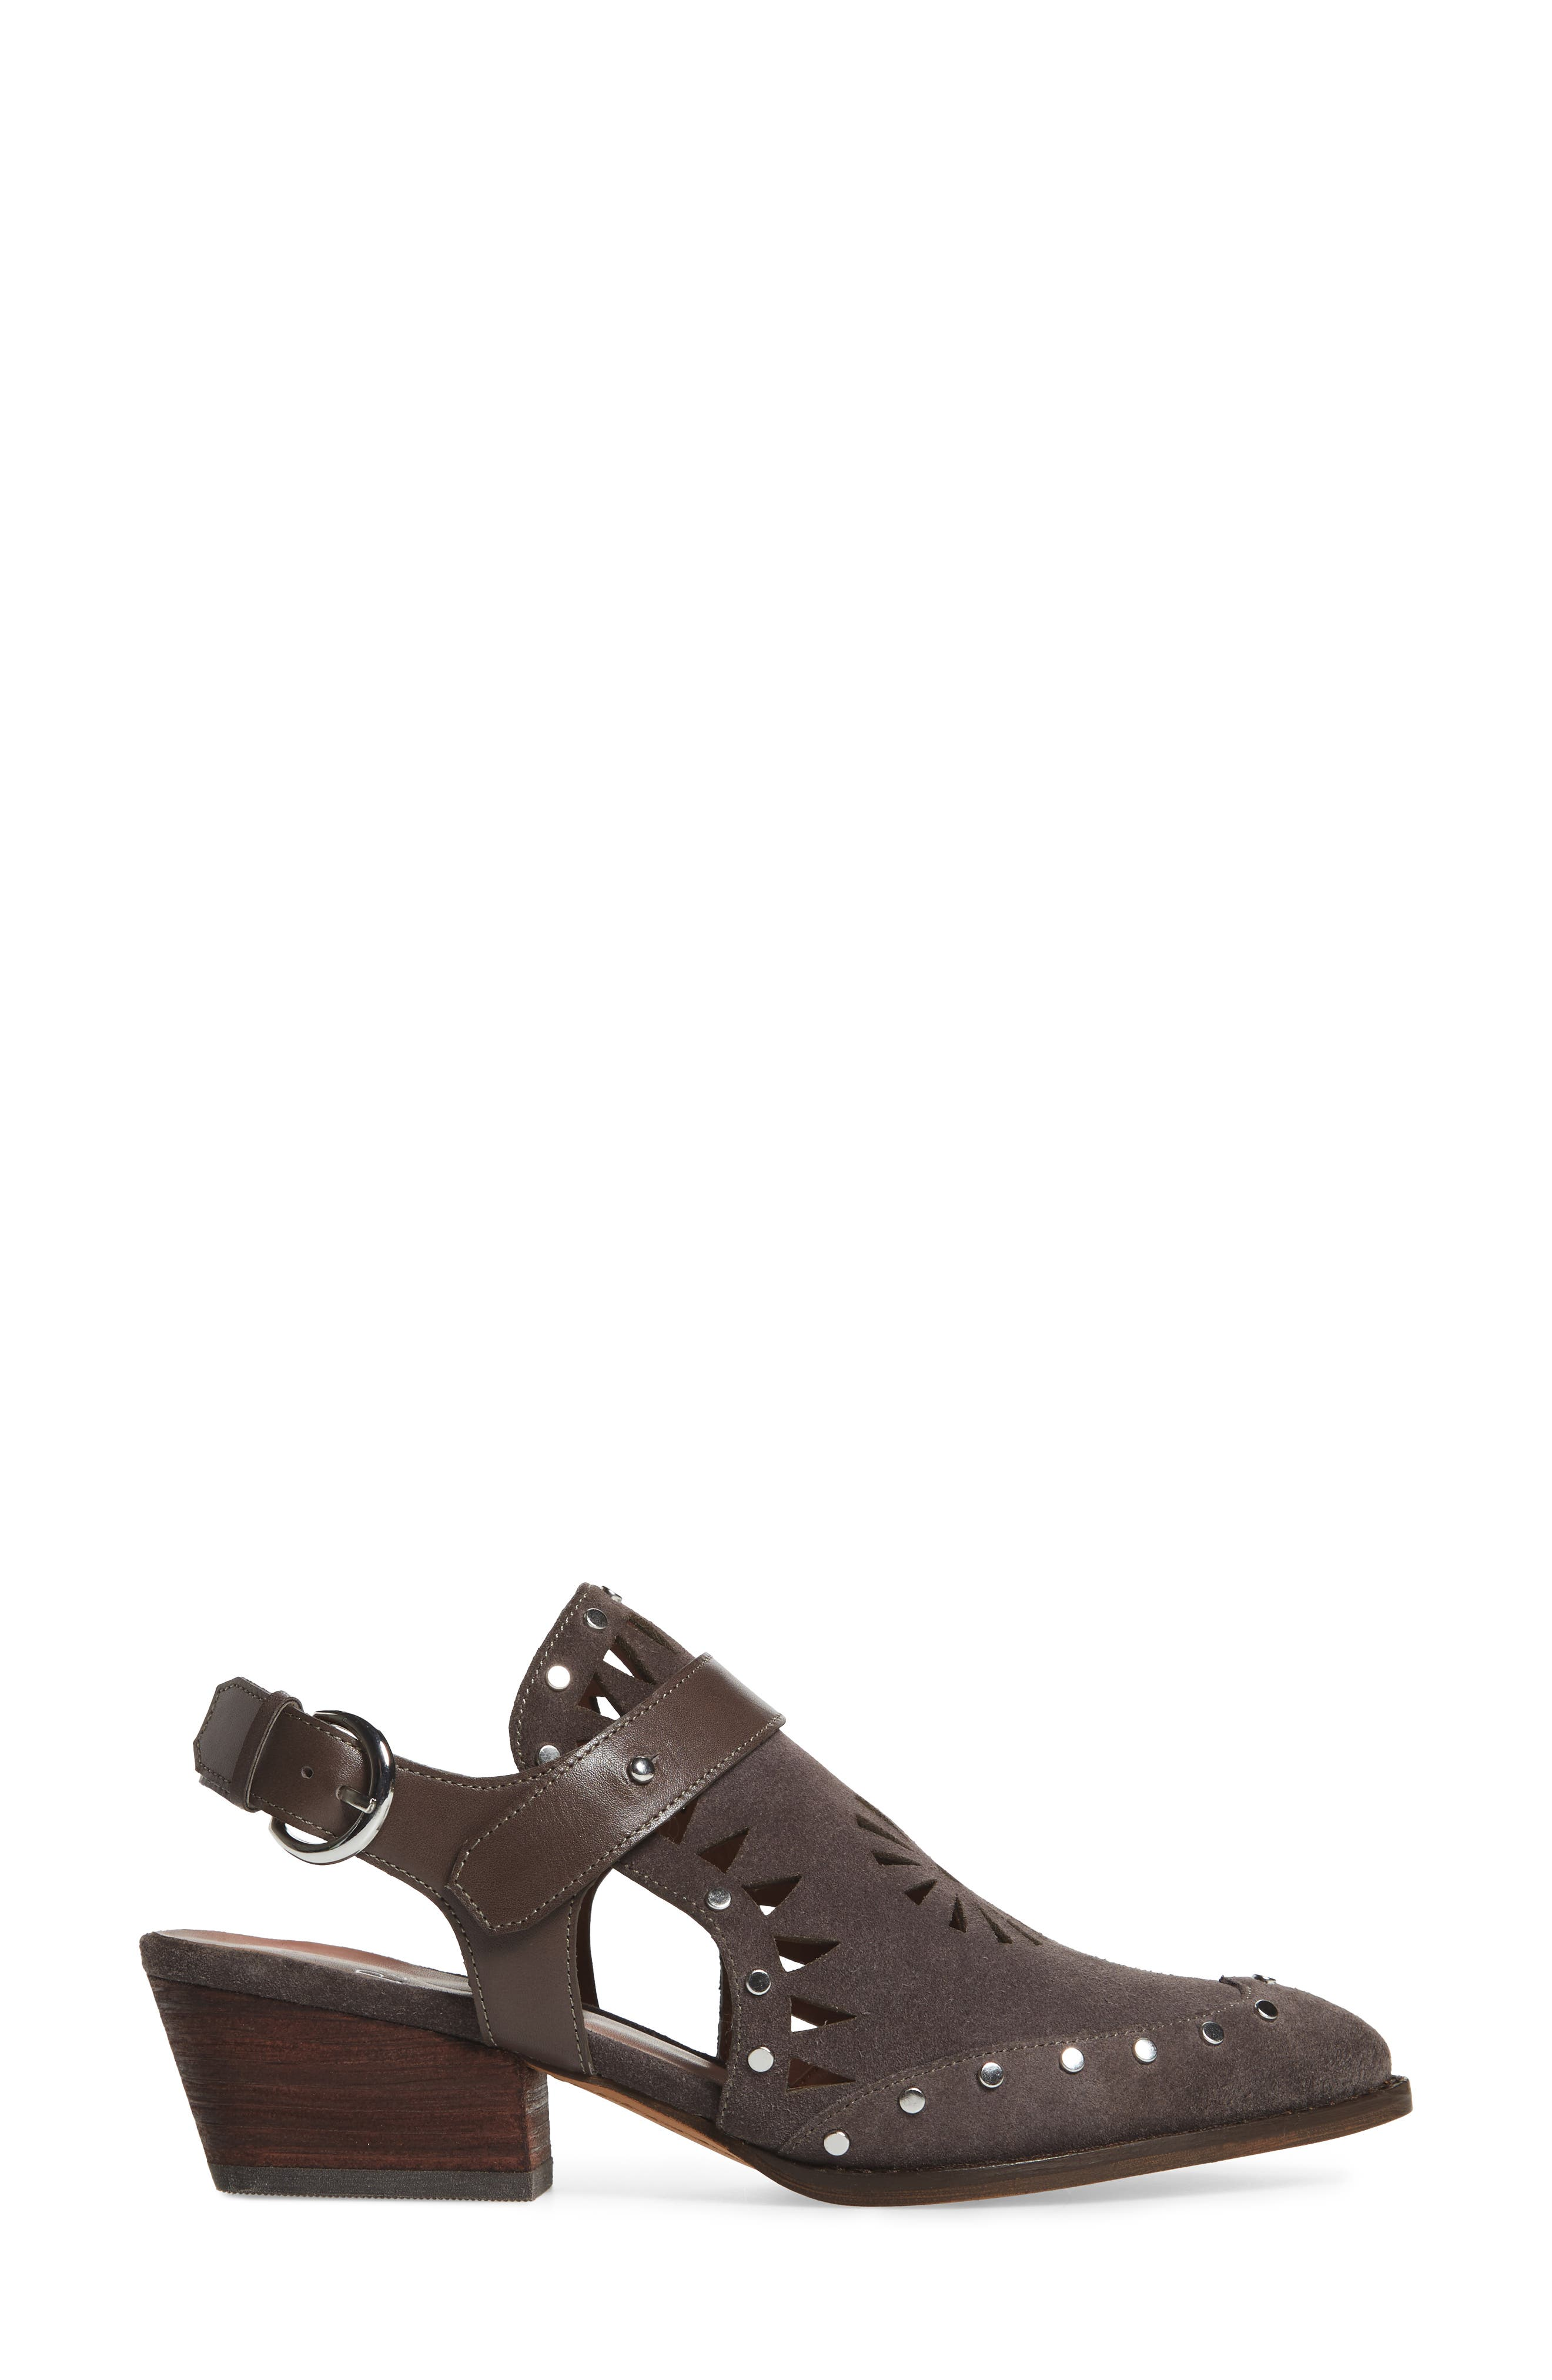 Whitney Bootie,                             Alternate thumbnail 3, color,                             Ash Suede